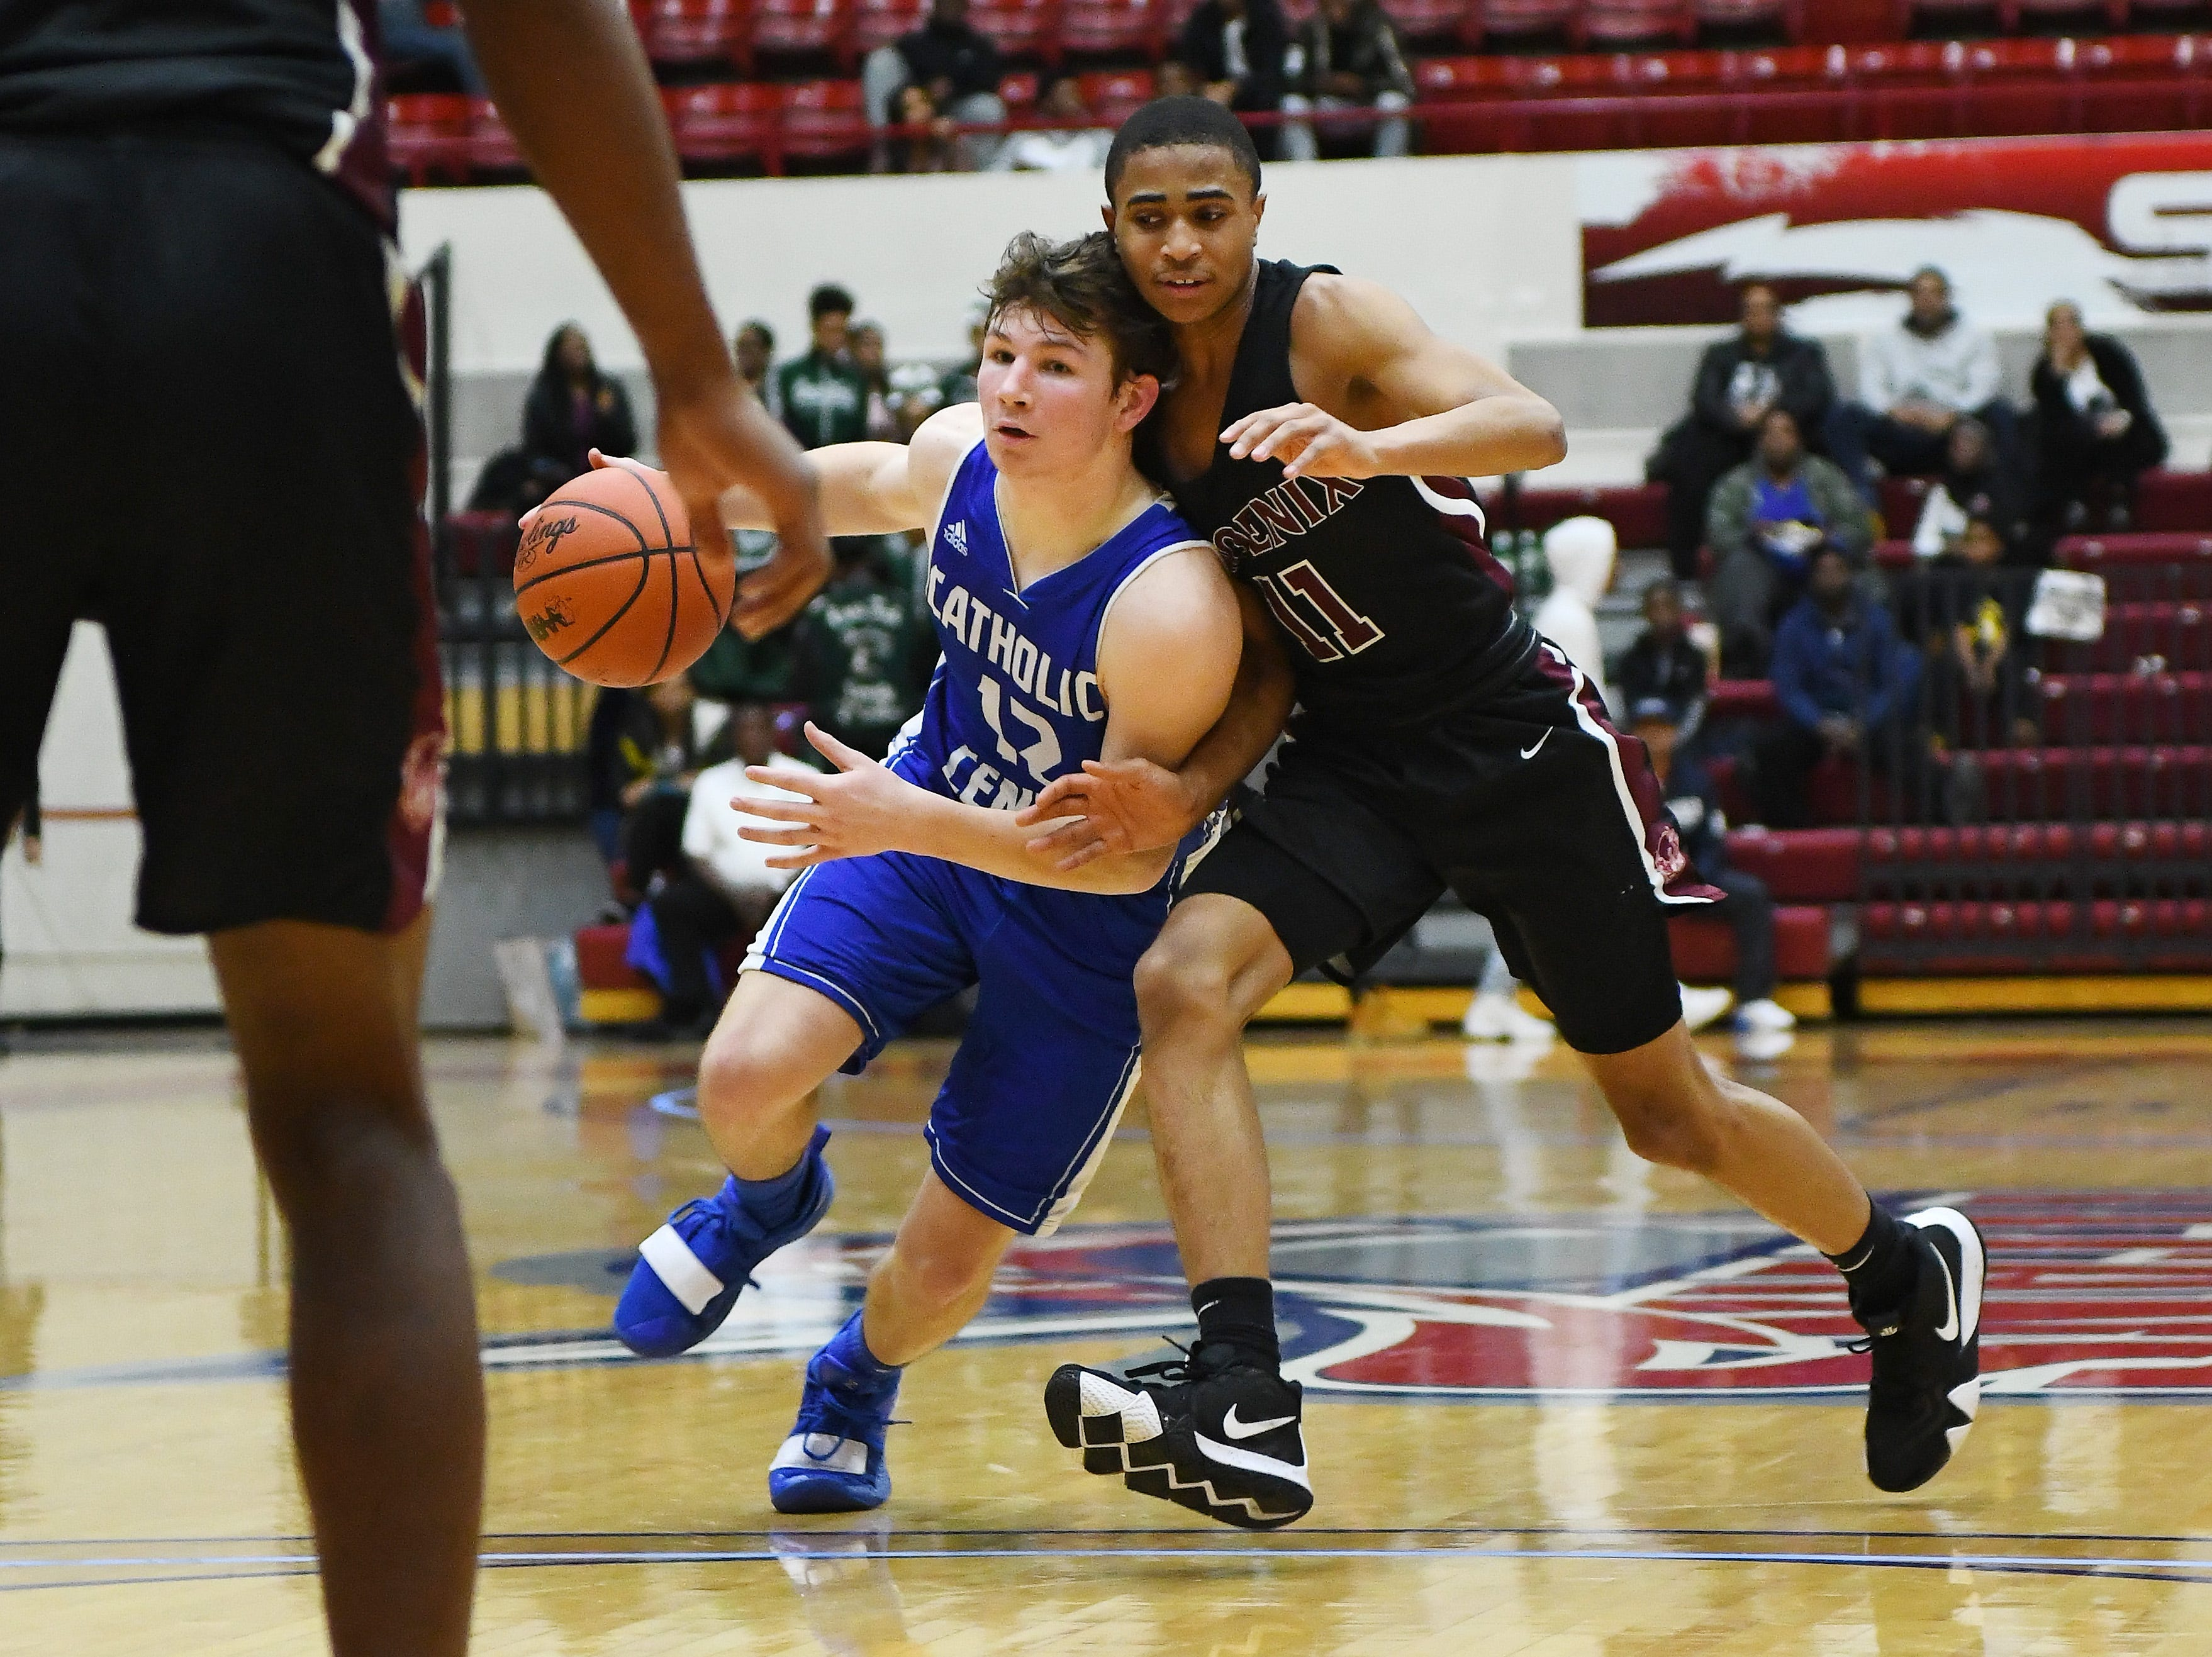 Catholic Central's Keegan Koehler brings the ball up court against Renaissance's Juwan Maxey in the second half of the consolation game.